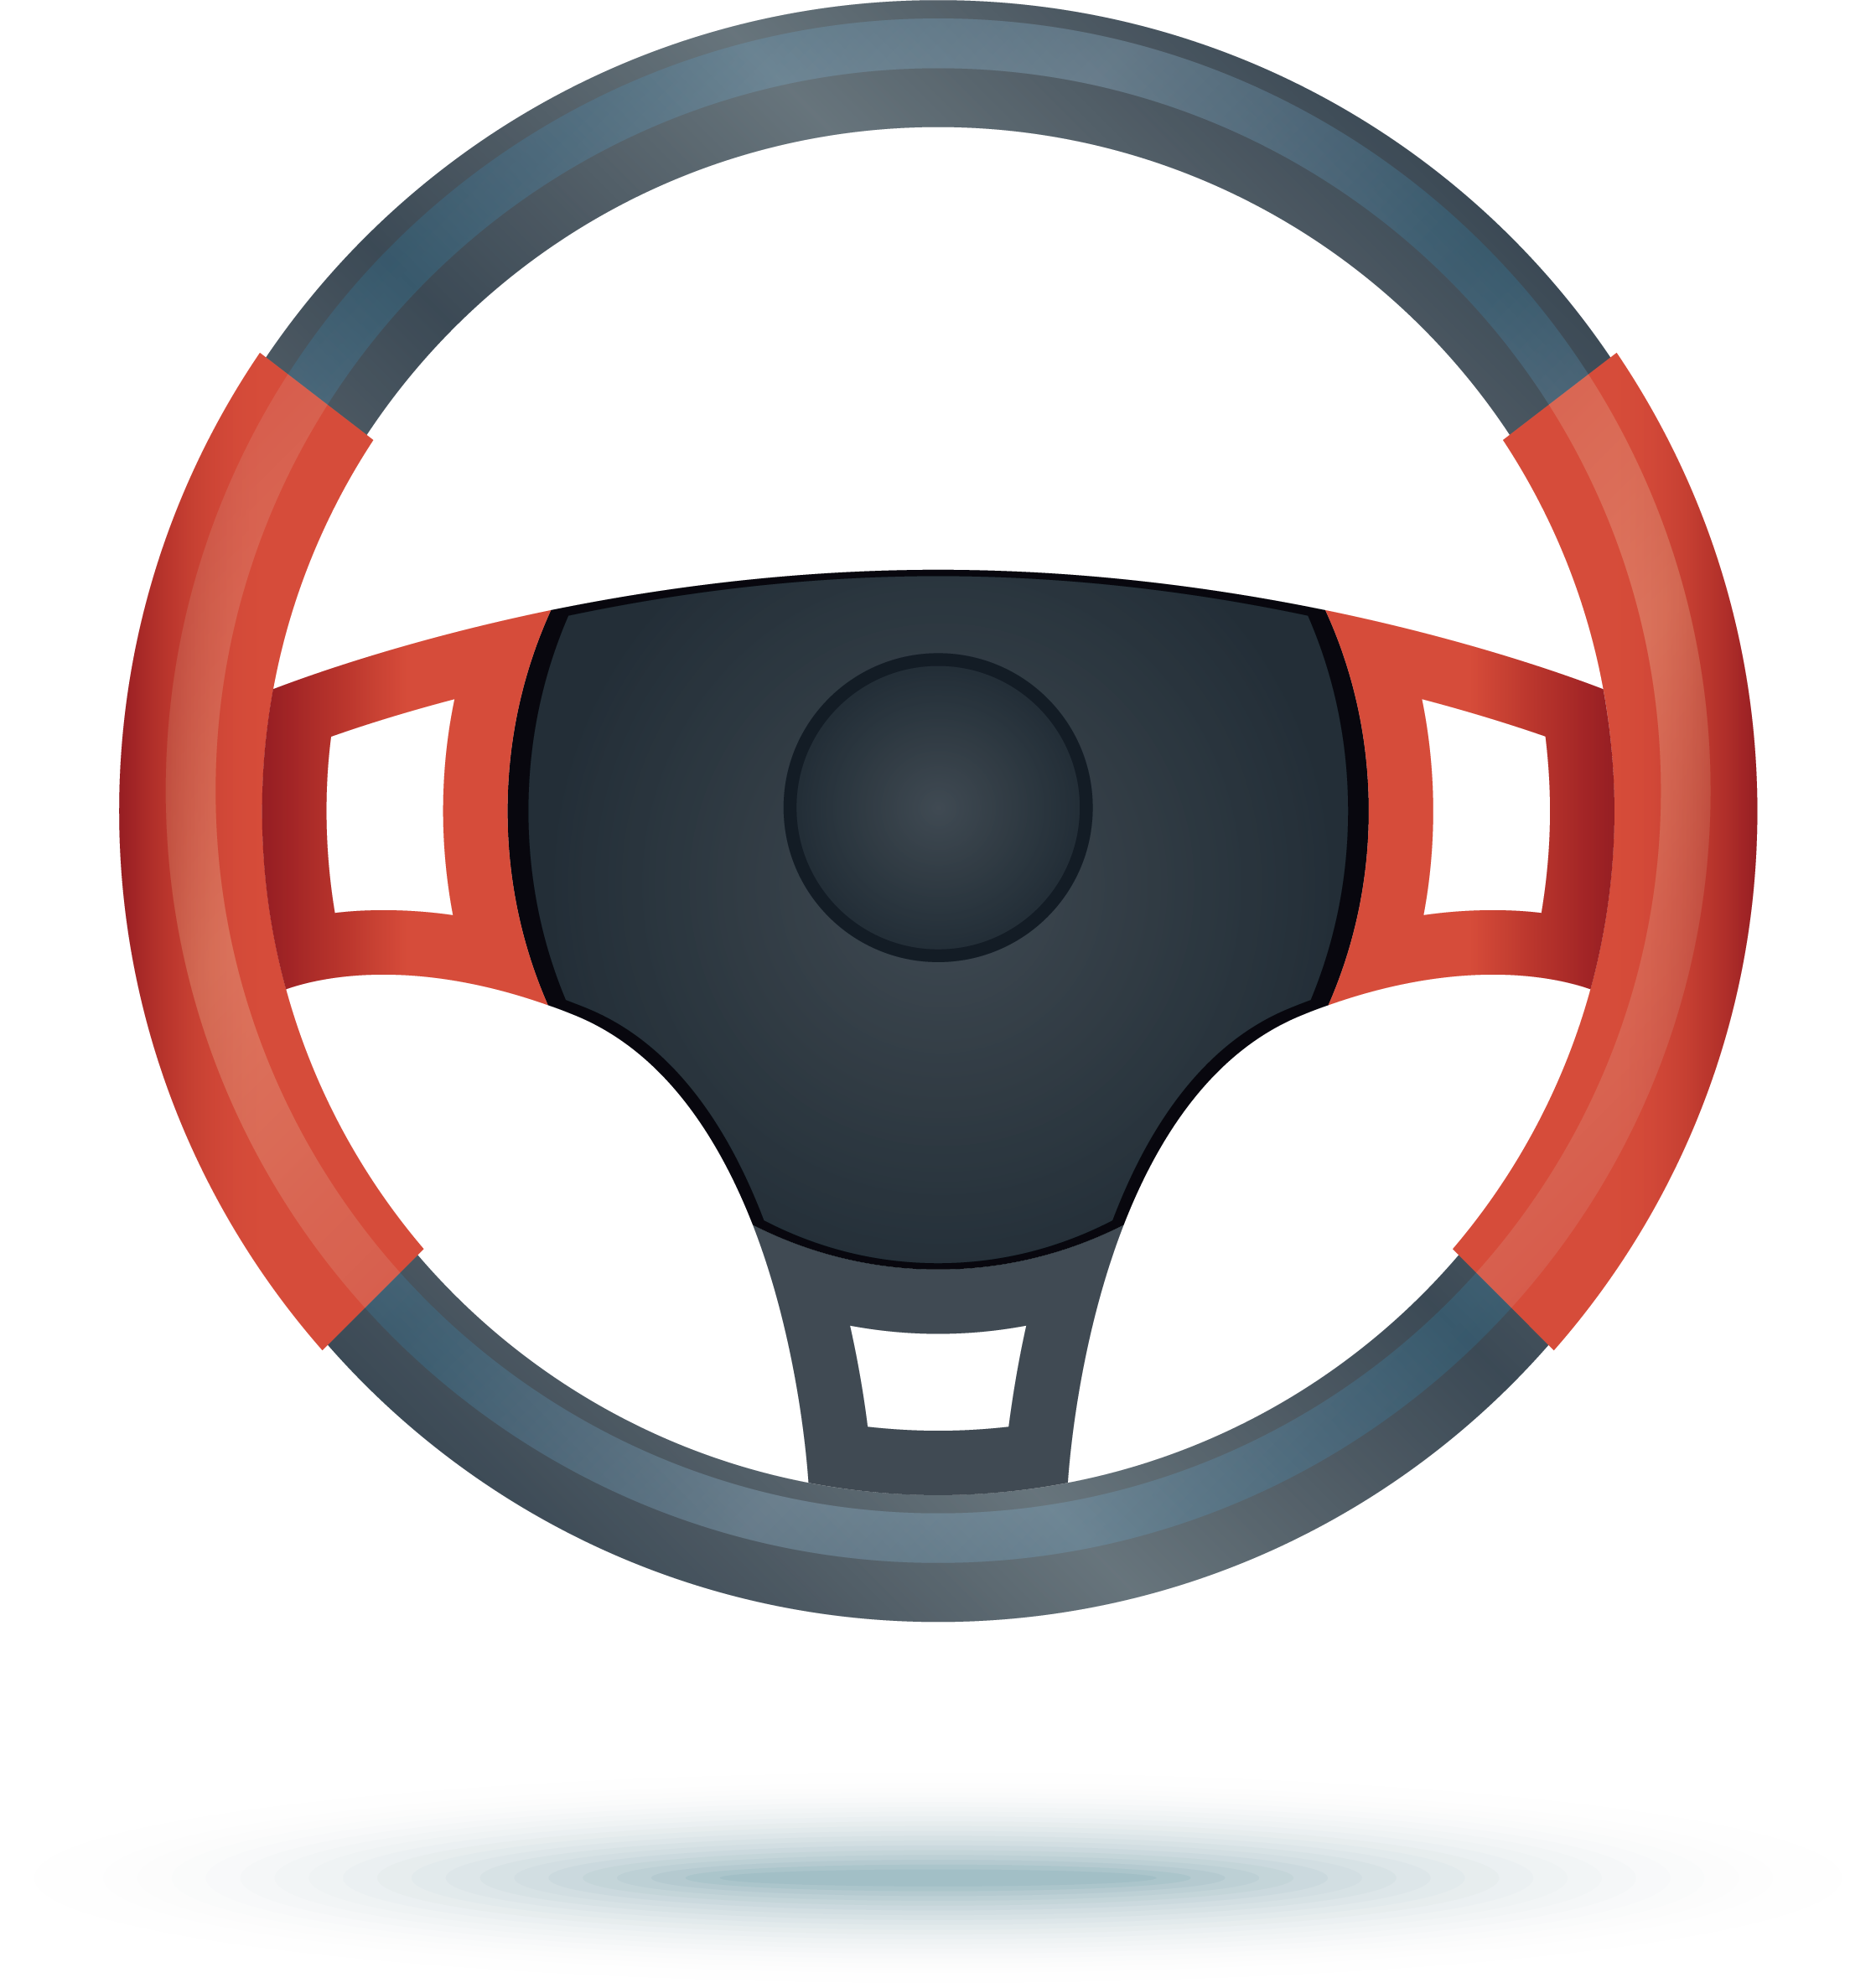 image free Car euclidean vector the. Steering wheel clipart png